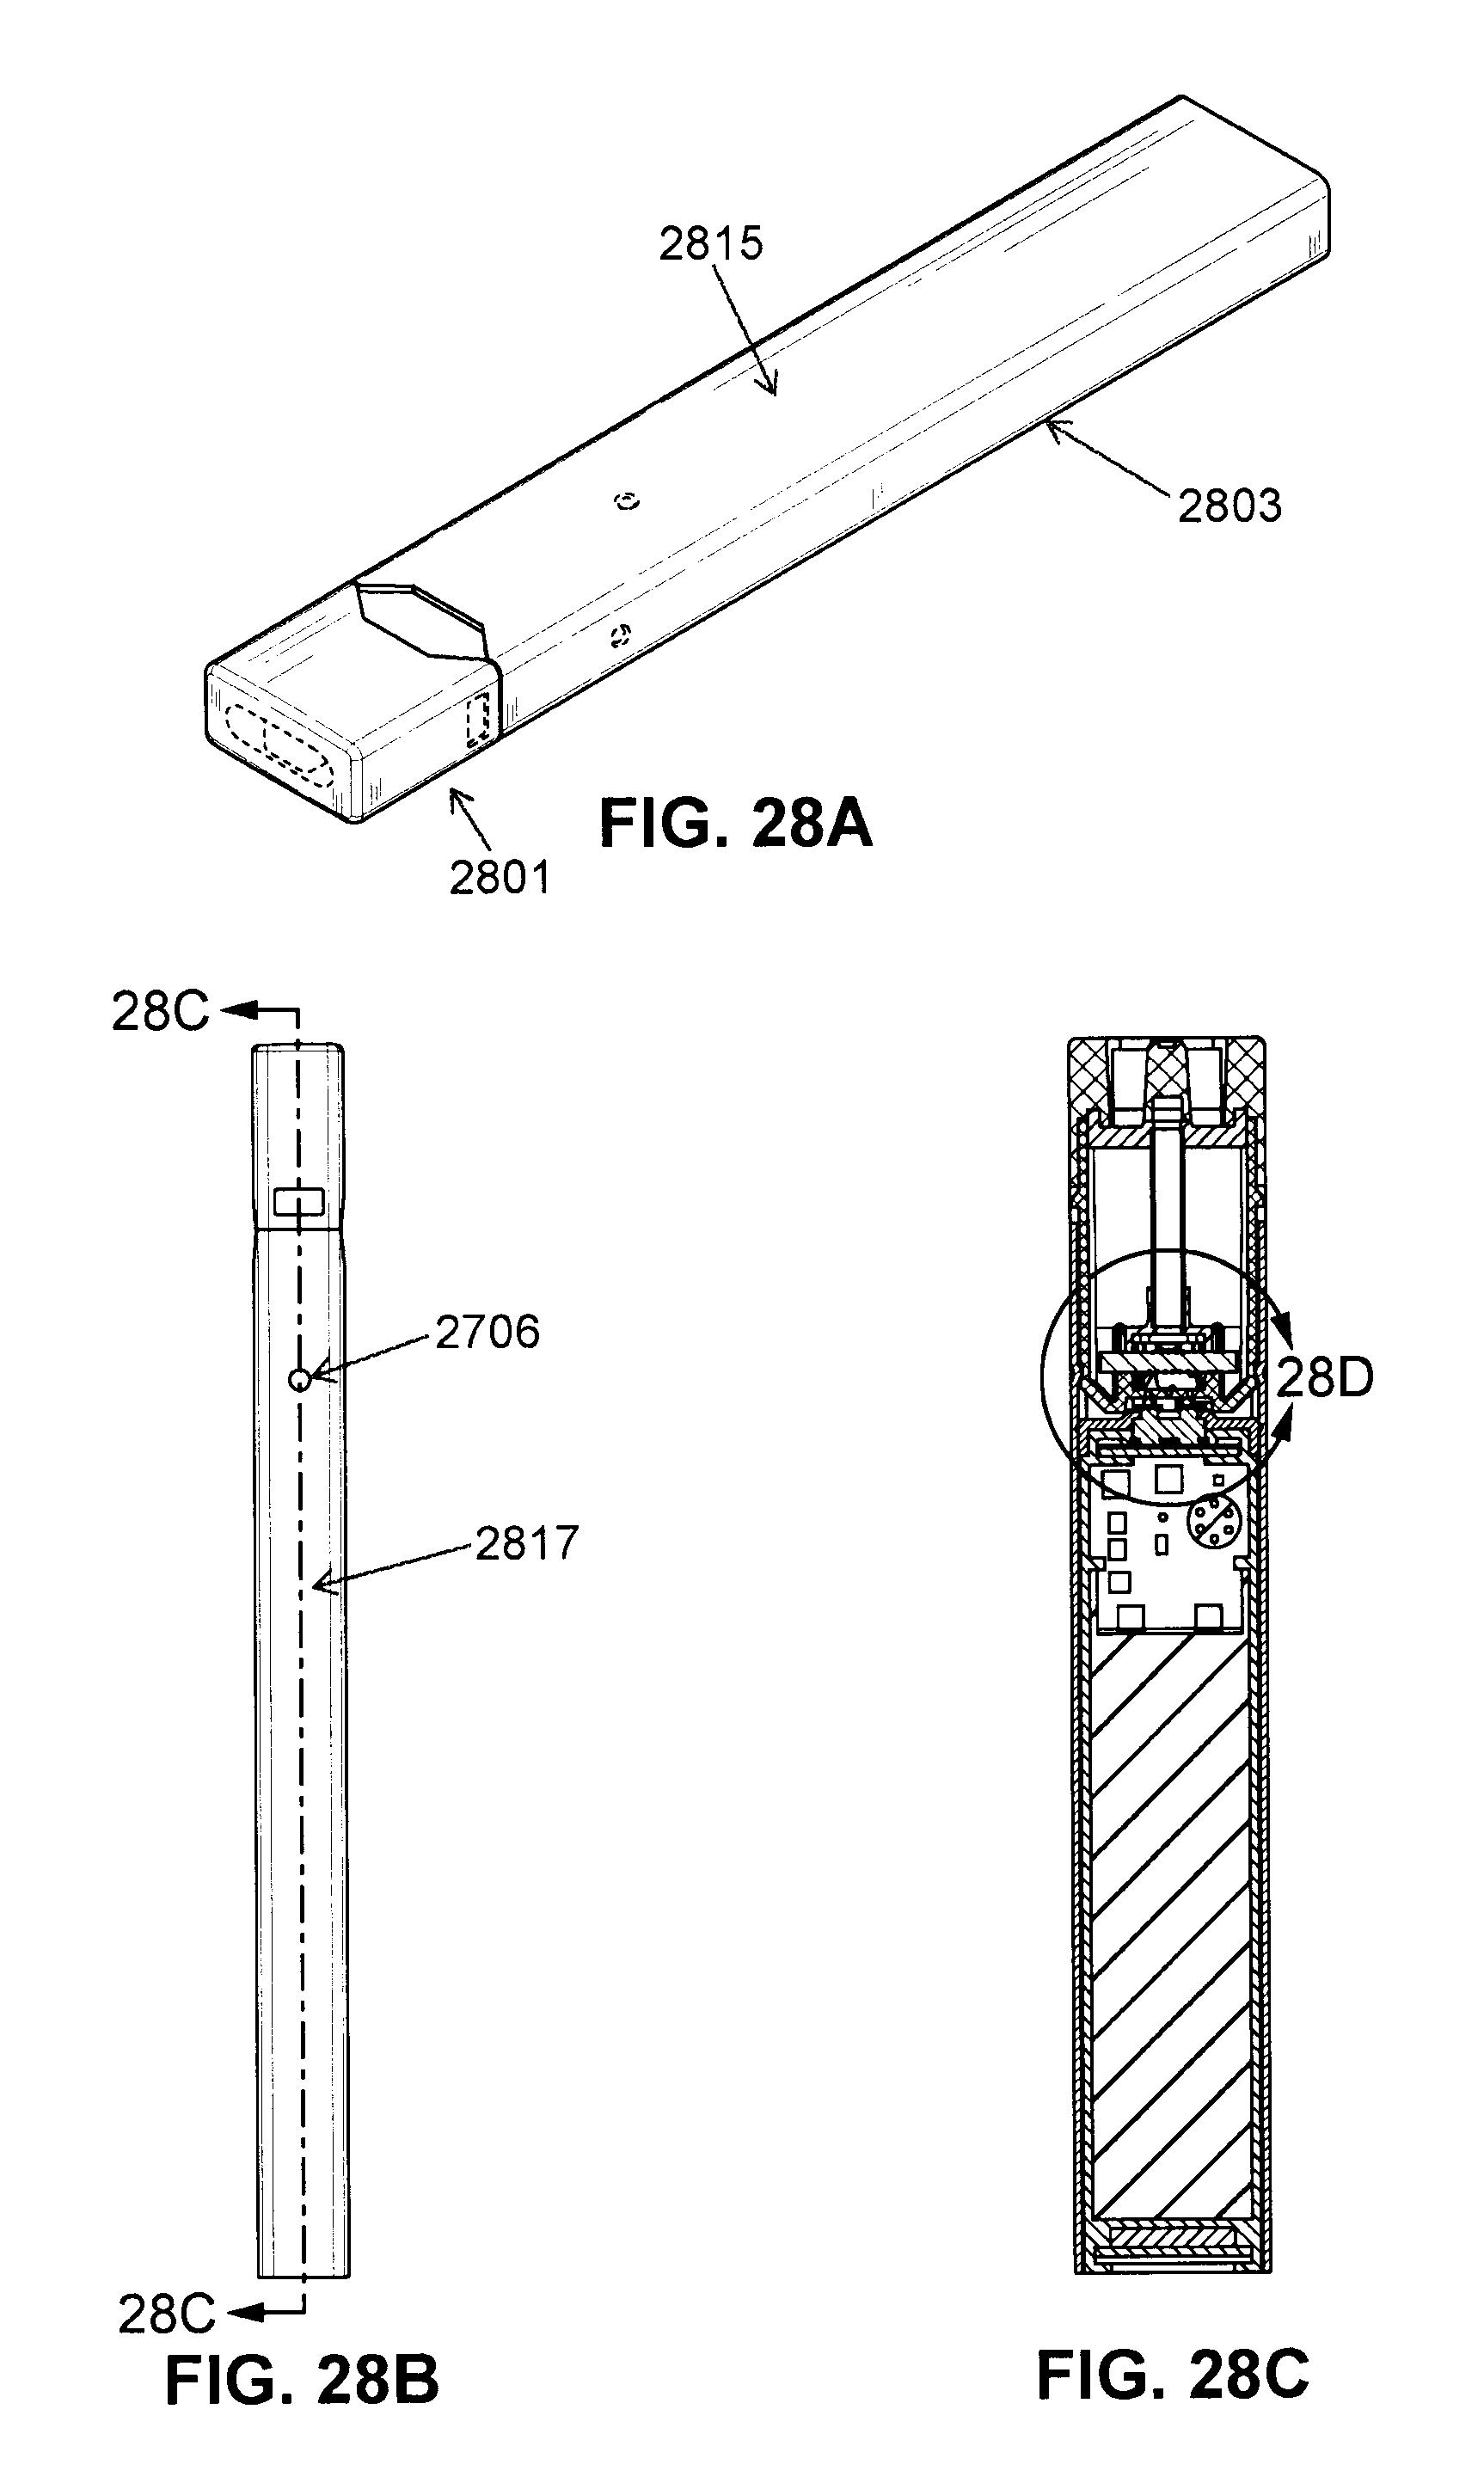 Us10058130b2 Cartridge For Use With A Vaporizer Device Google Esquire Wiring Diagram Single Pu Patents